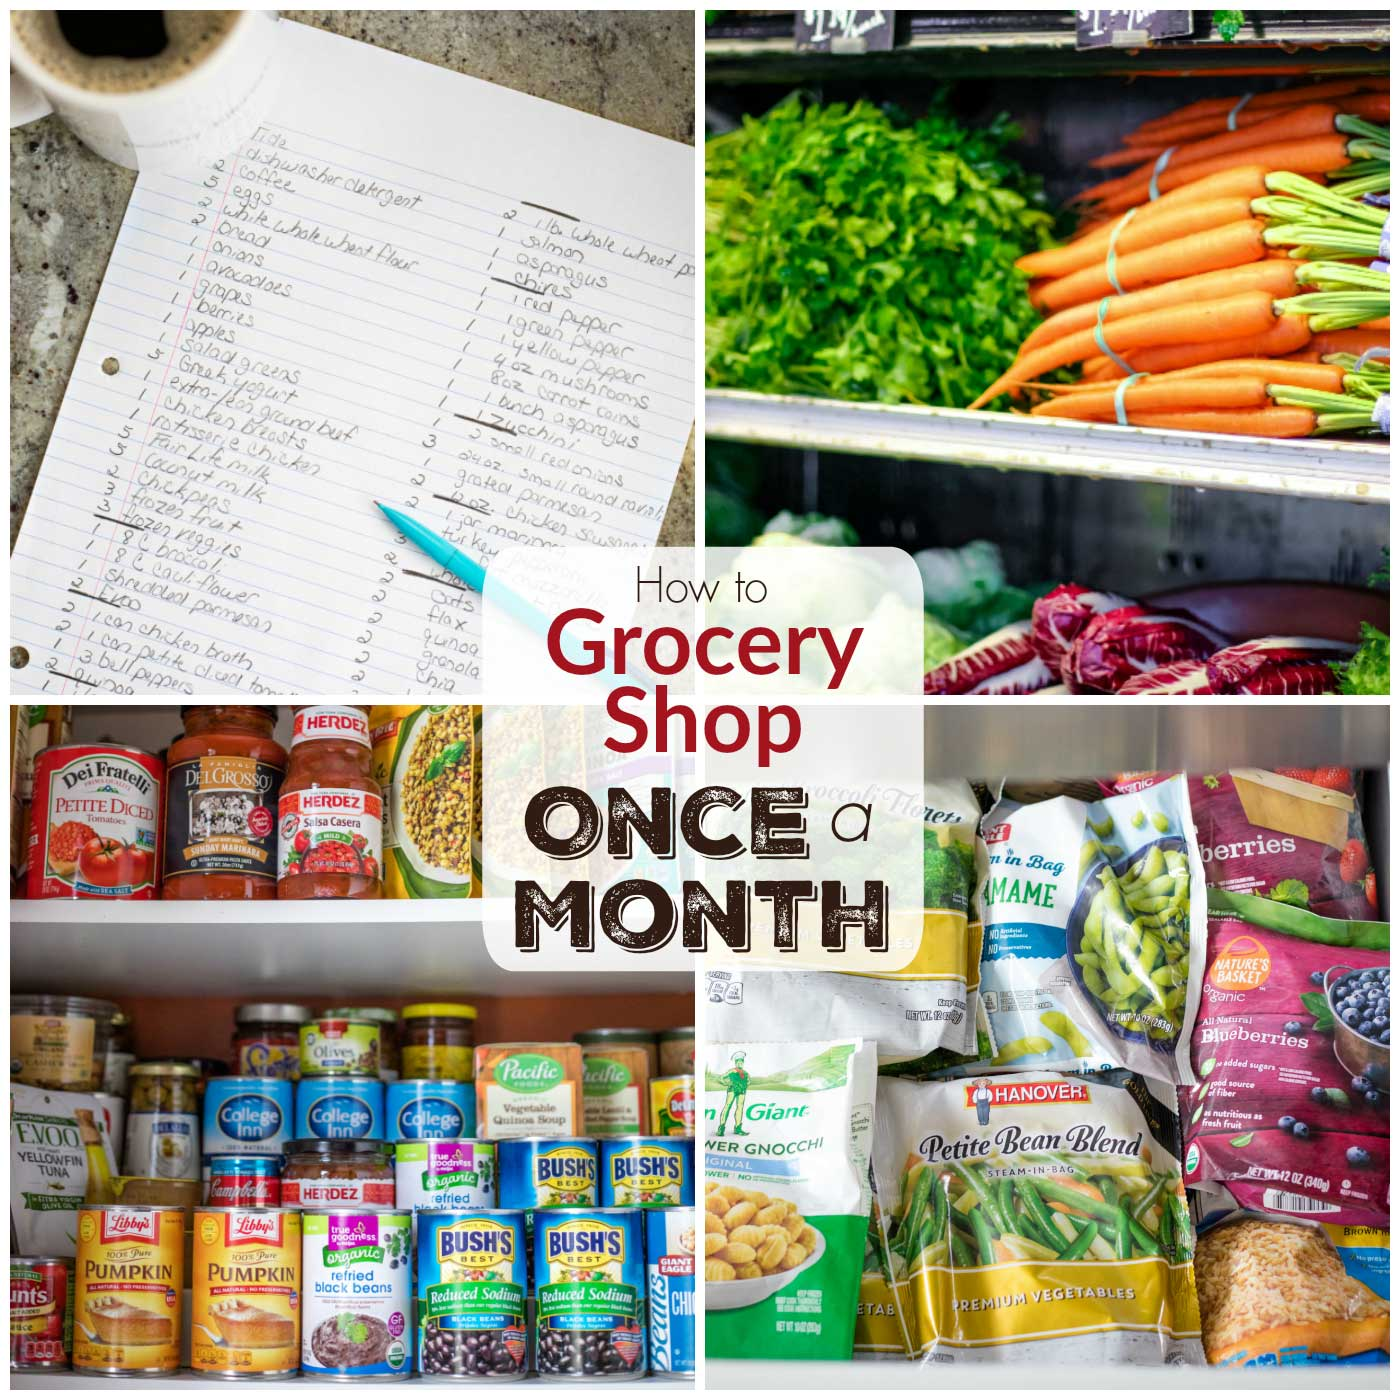 4 photos showing scenes of once a month grocery shopping, from planning the list to choosing at the store, to organizing at home